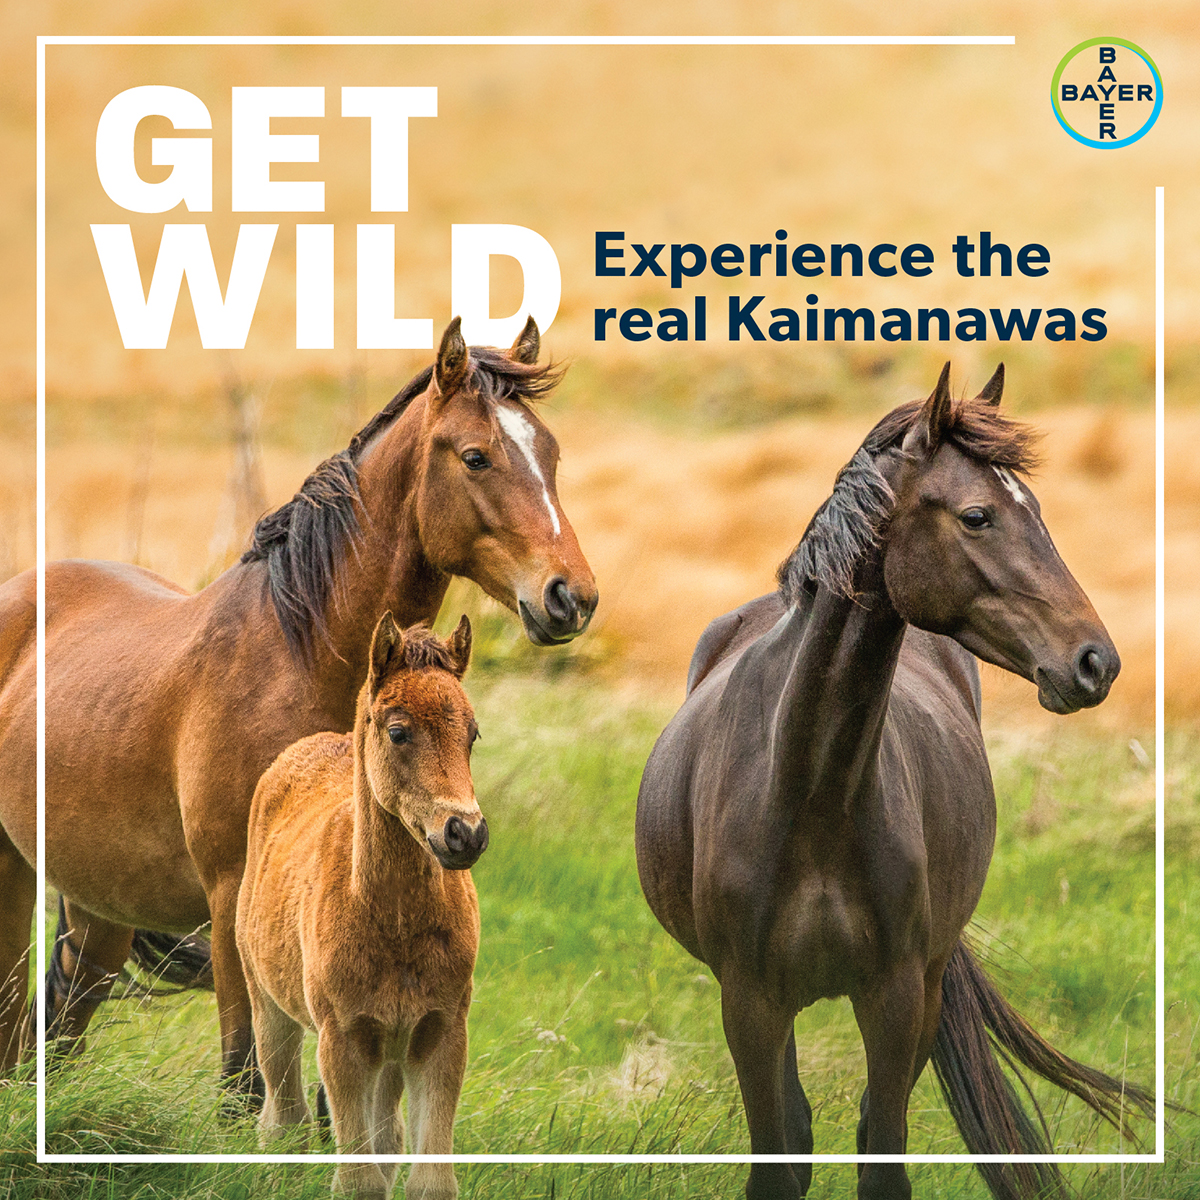 Bayer Ultra-Mox and Equitak Excel Promotion - Win a Kaimanawa Experience